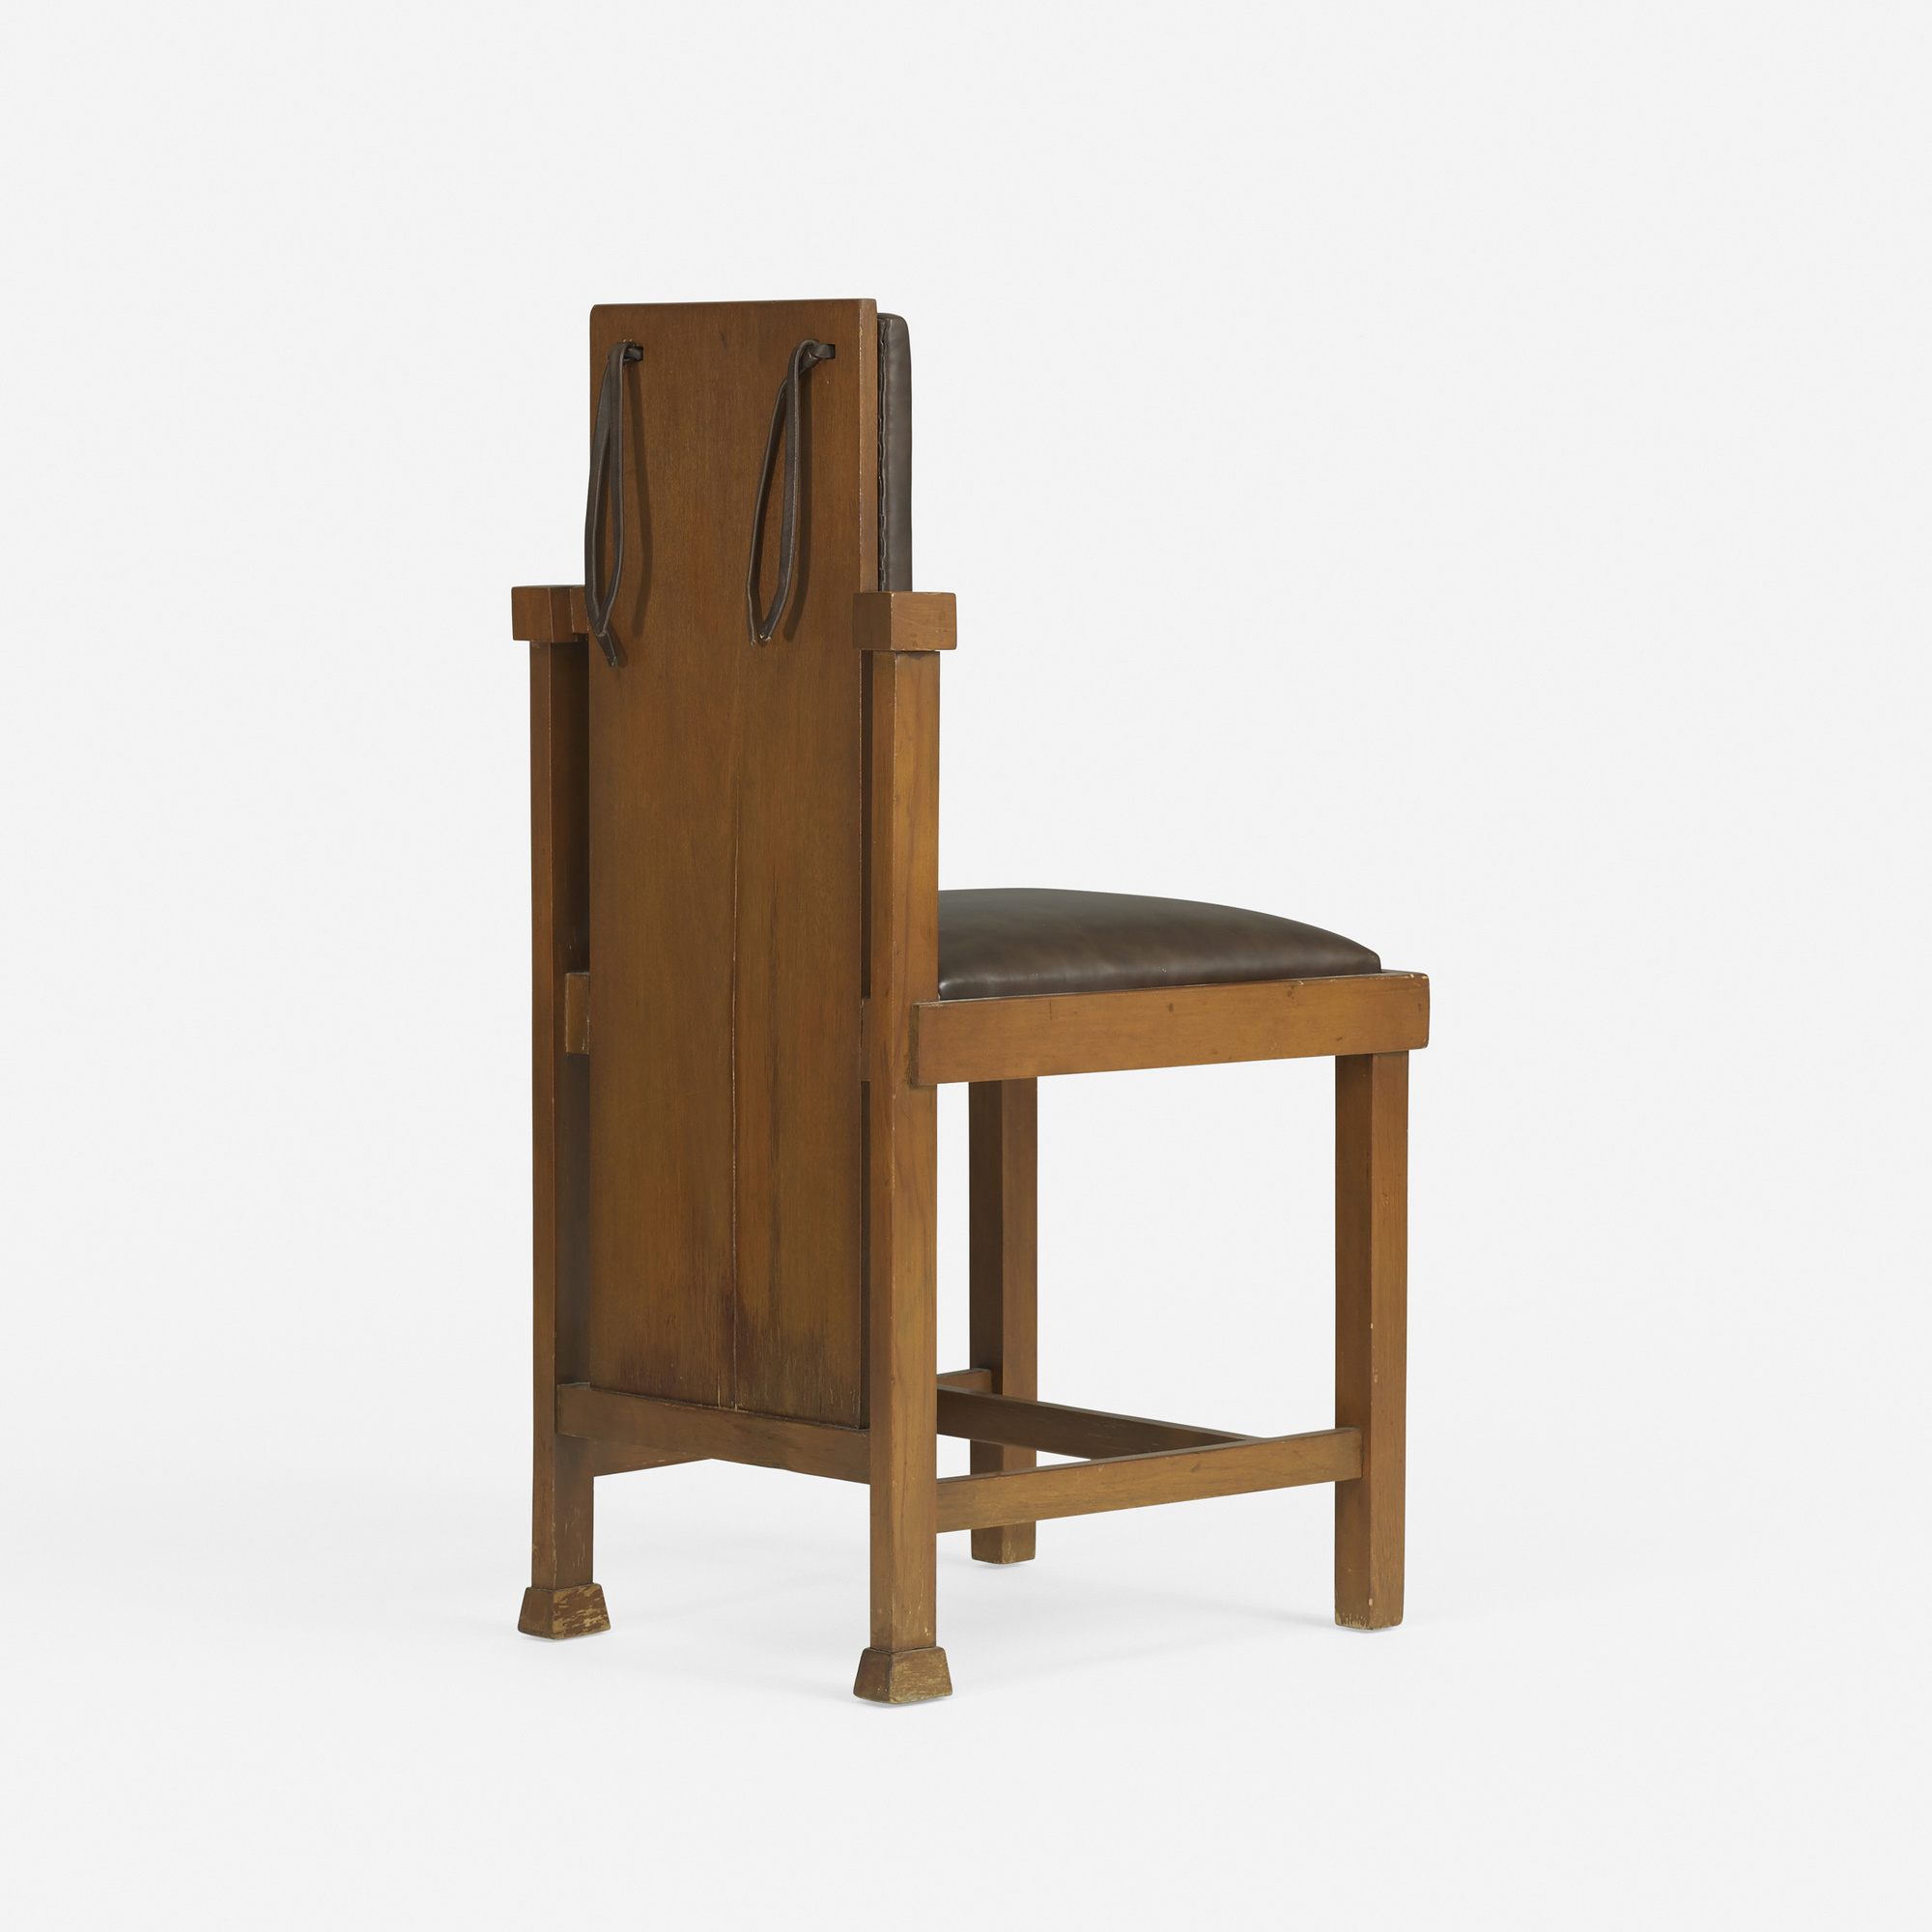 168: FRANK LLOYD WRIGHT, chair from the Avery Coonley